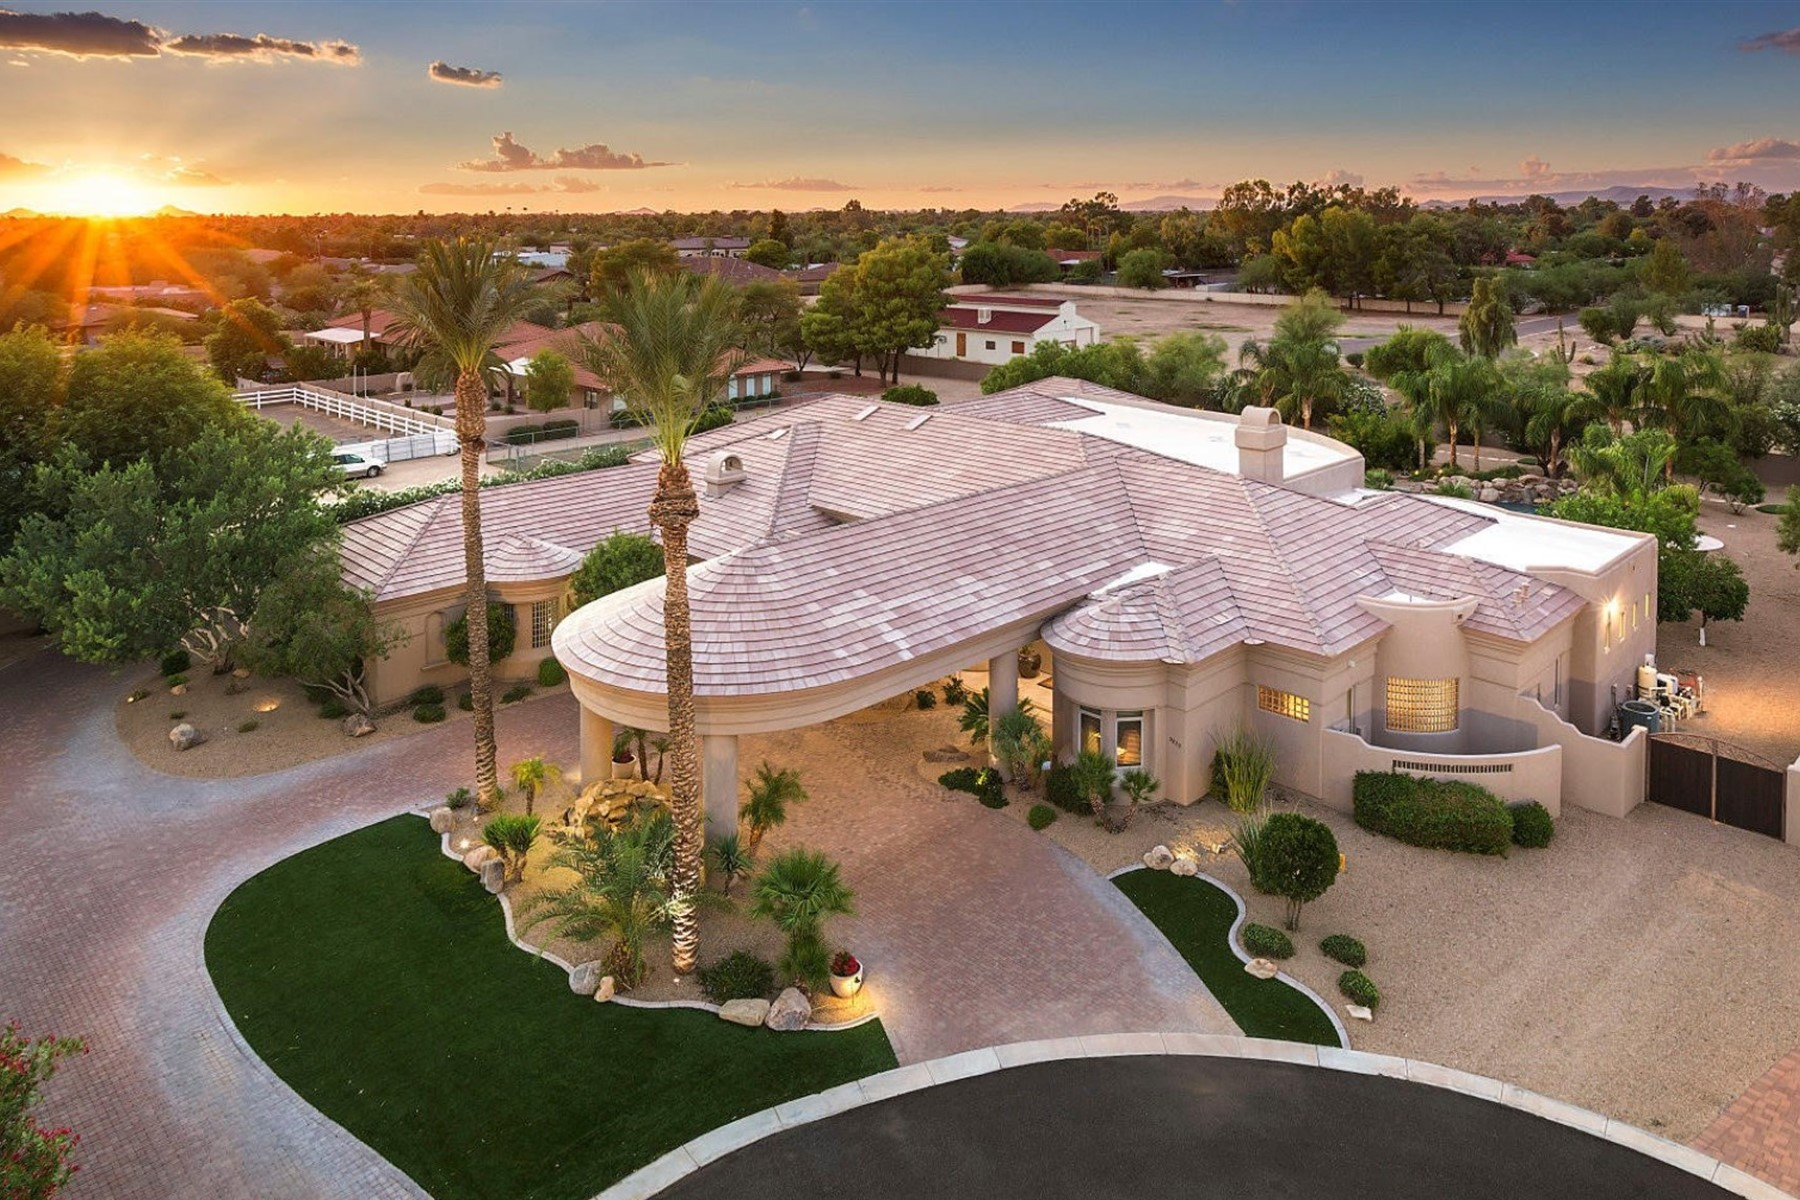 独户住宅 为 销售 在 Fabulous Custom Home In The Exclusive Privately Gated Lebella Casa Cactus Acres 9822 E Desert Cove Ave Scottsdale, 亚利桑那州 85260 美国